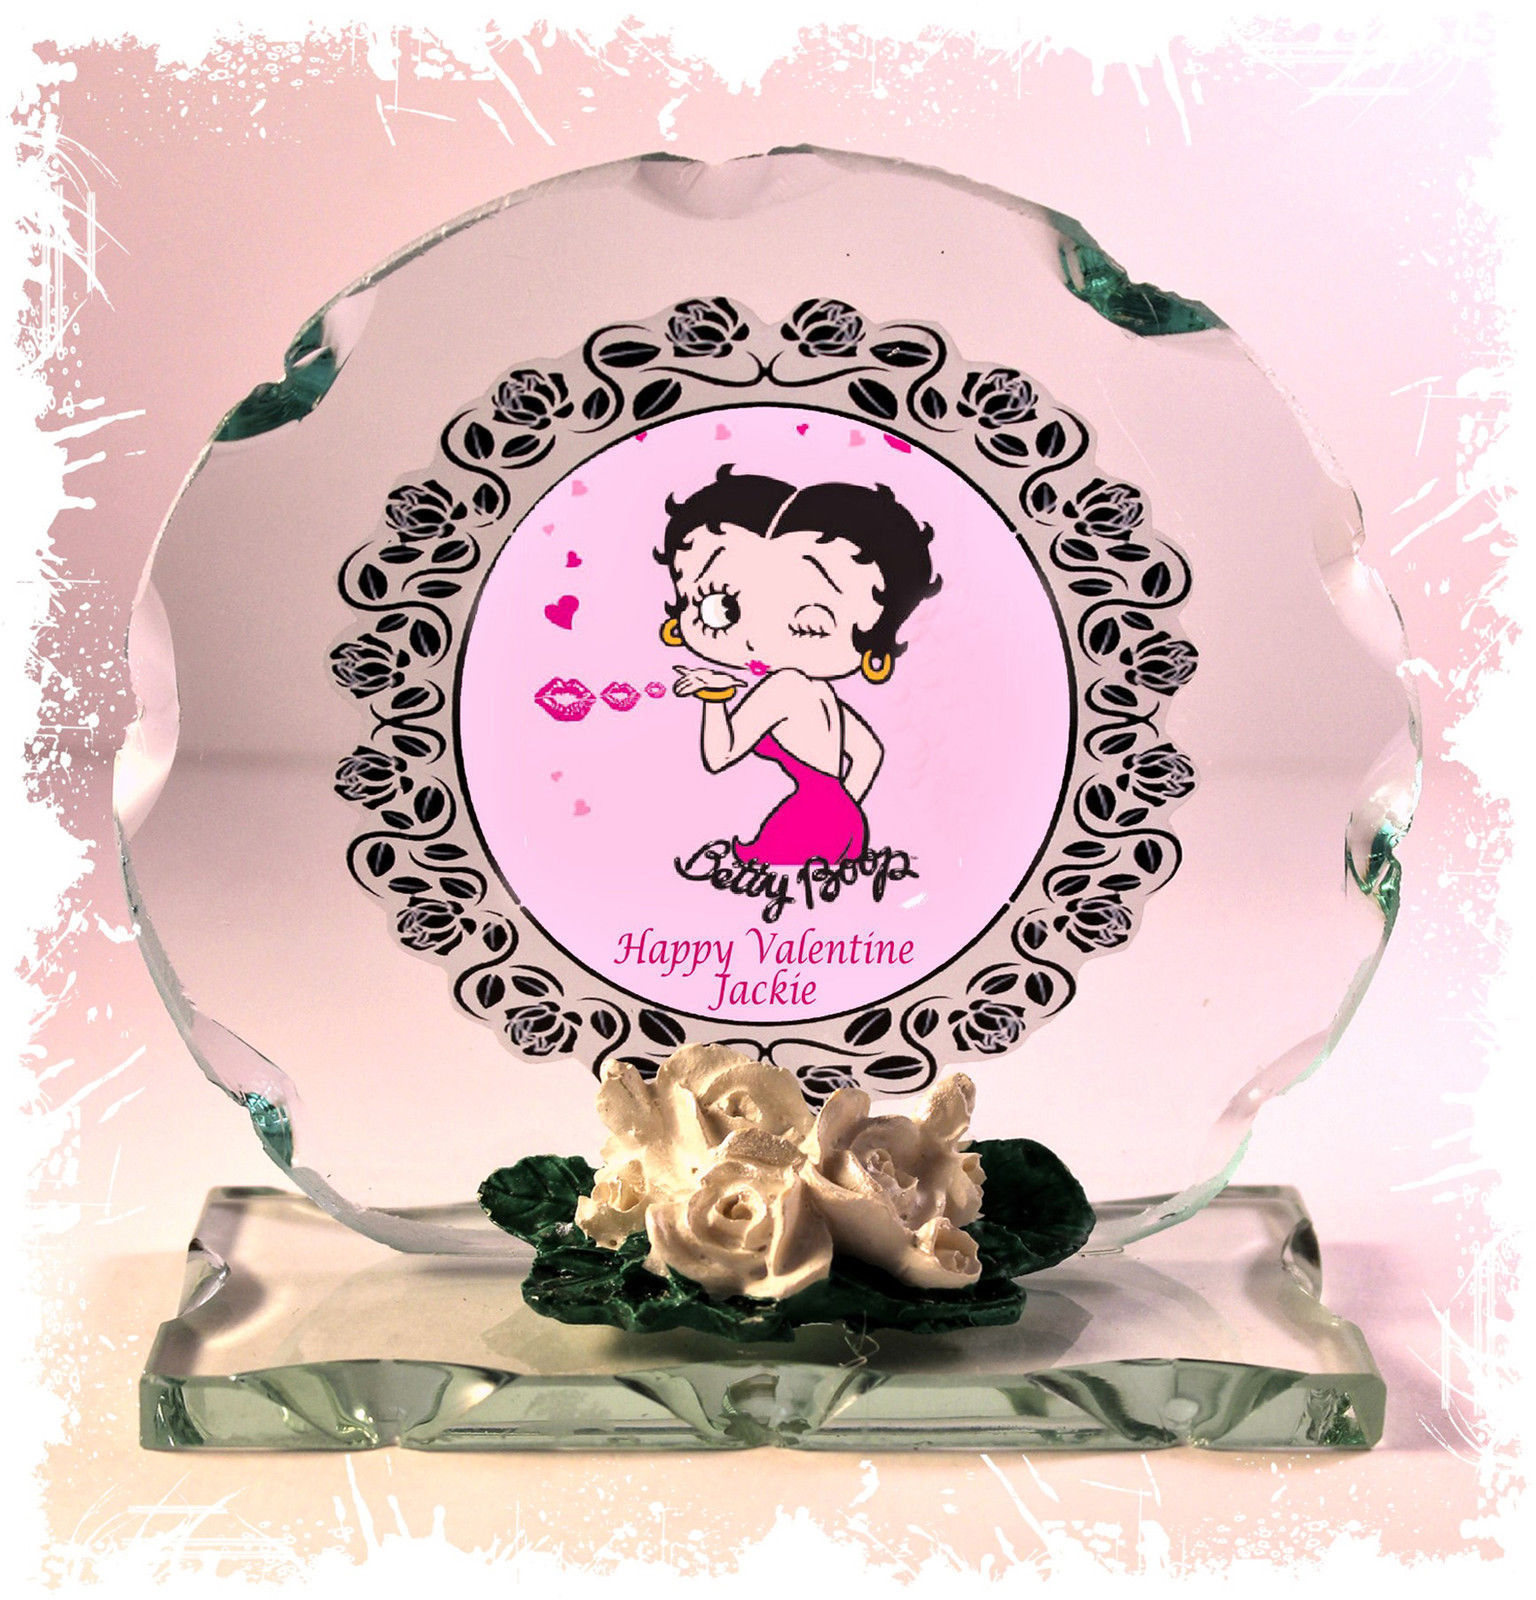 Valentine Betty personalised gift girlfriend wife present Unusual  message #8